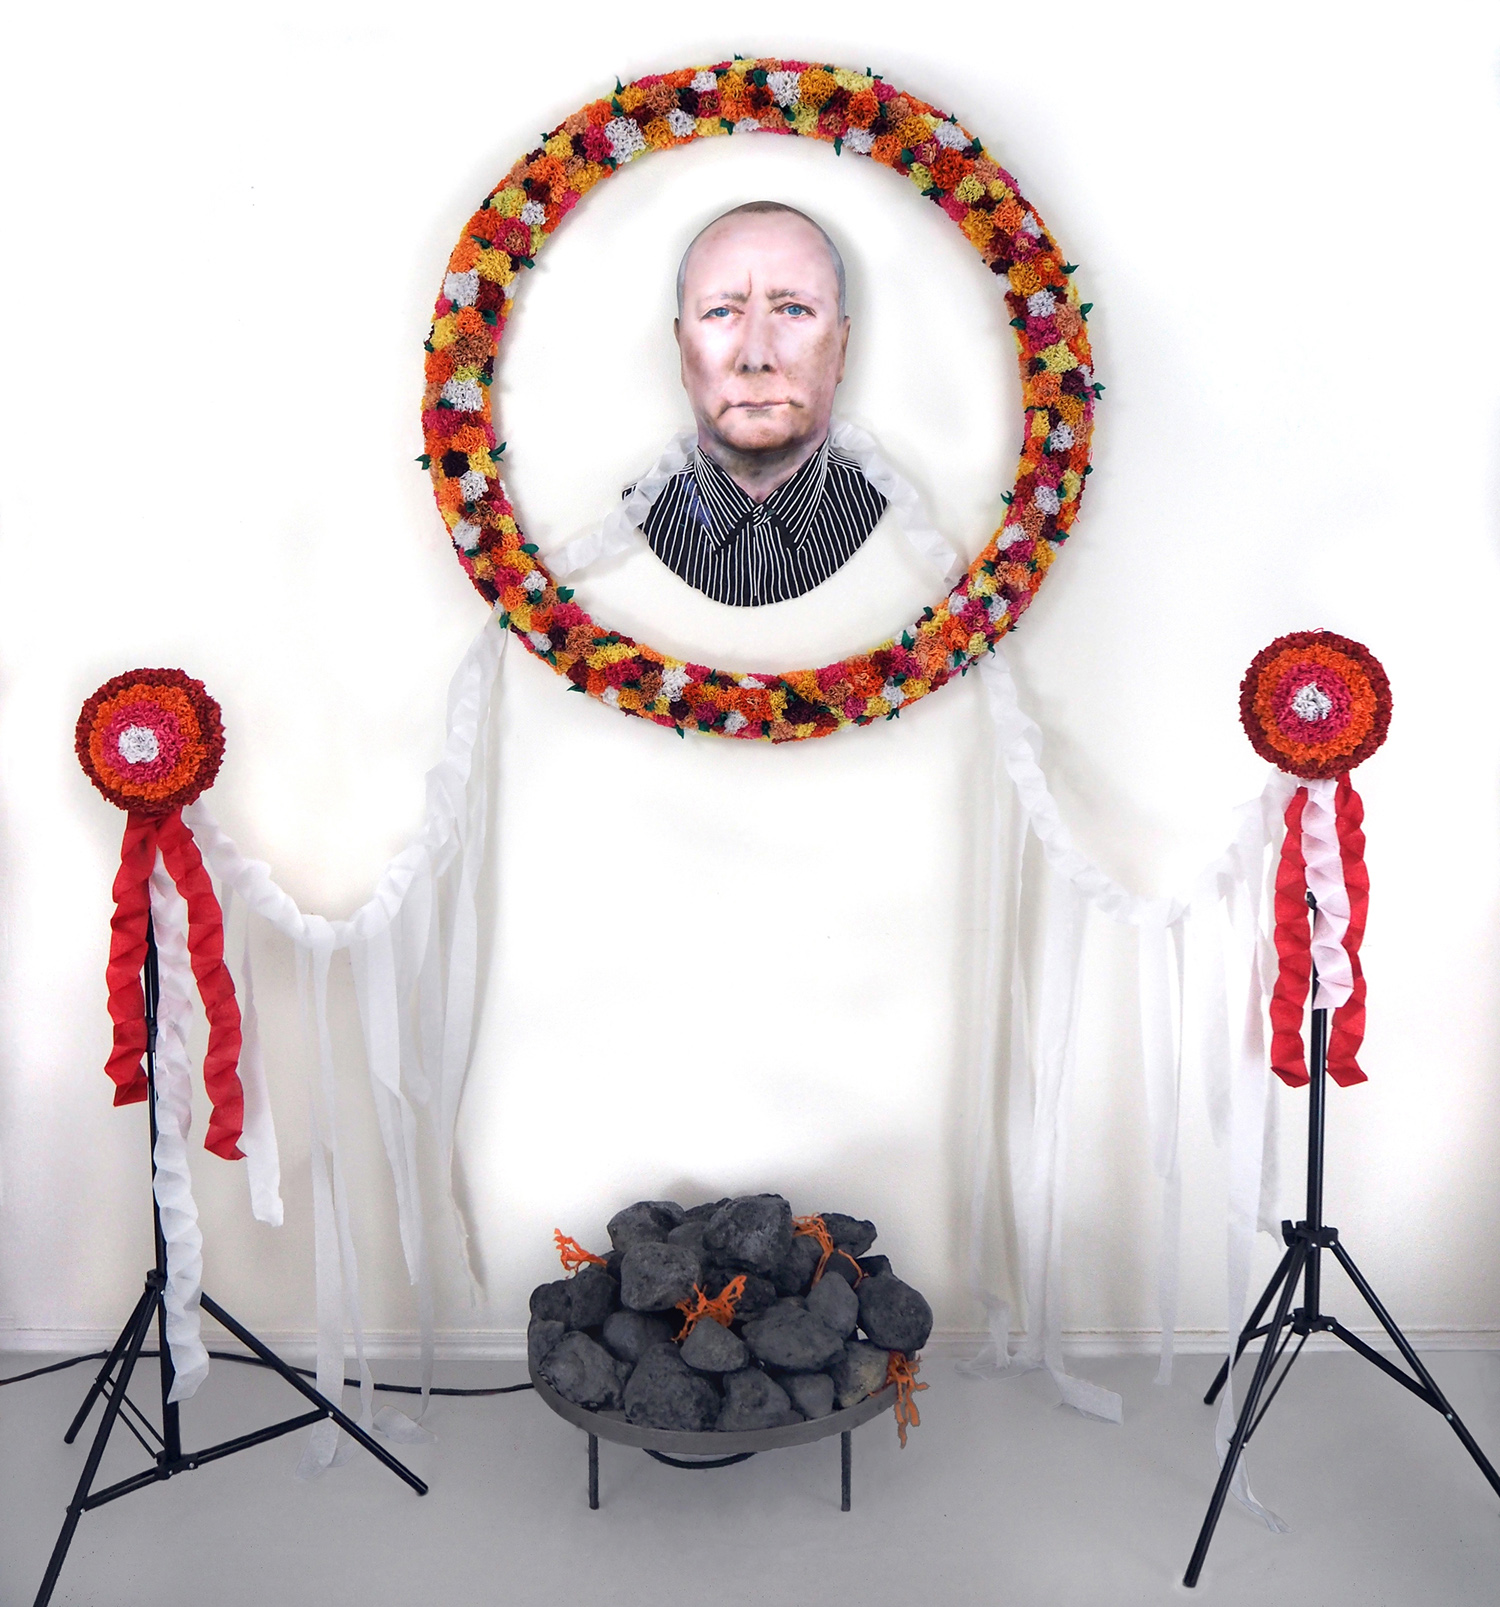 Carrie Fonder,  Portrait of an Artist as a Dead Man , 2016, Urethane foam, tissue paper, streamers, steel, yarn, airbrushed acrylic, 80 x 85 x 46 inches  This mixed media sculptural installation features an airbrushed acrylic portrait of artist Mike Kelley. A tissue paper wreath, streamers, and urethane foam rocks surround the portrait and are activated by a concealed fan.